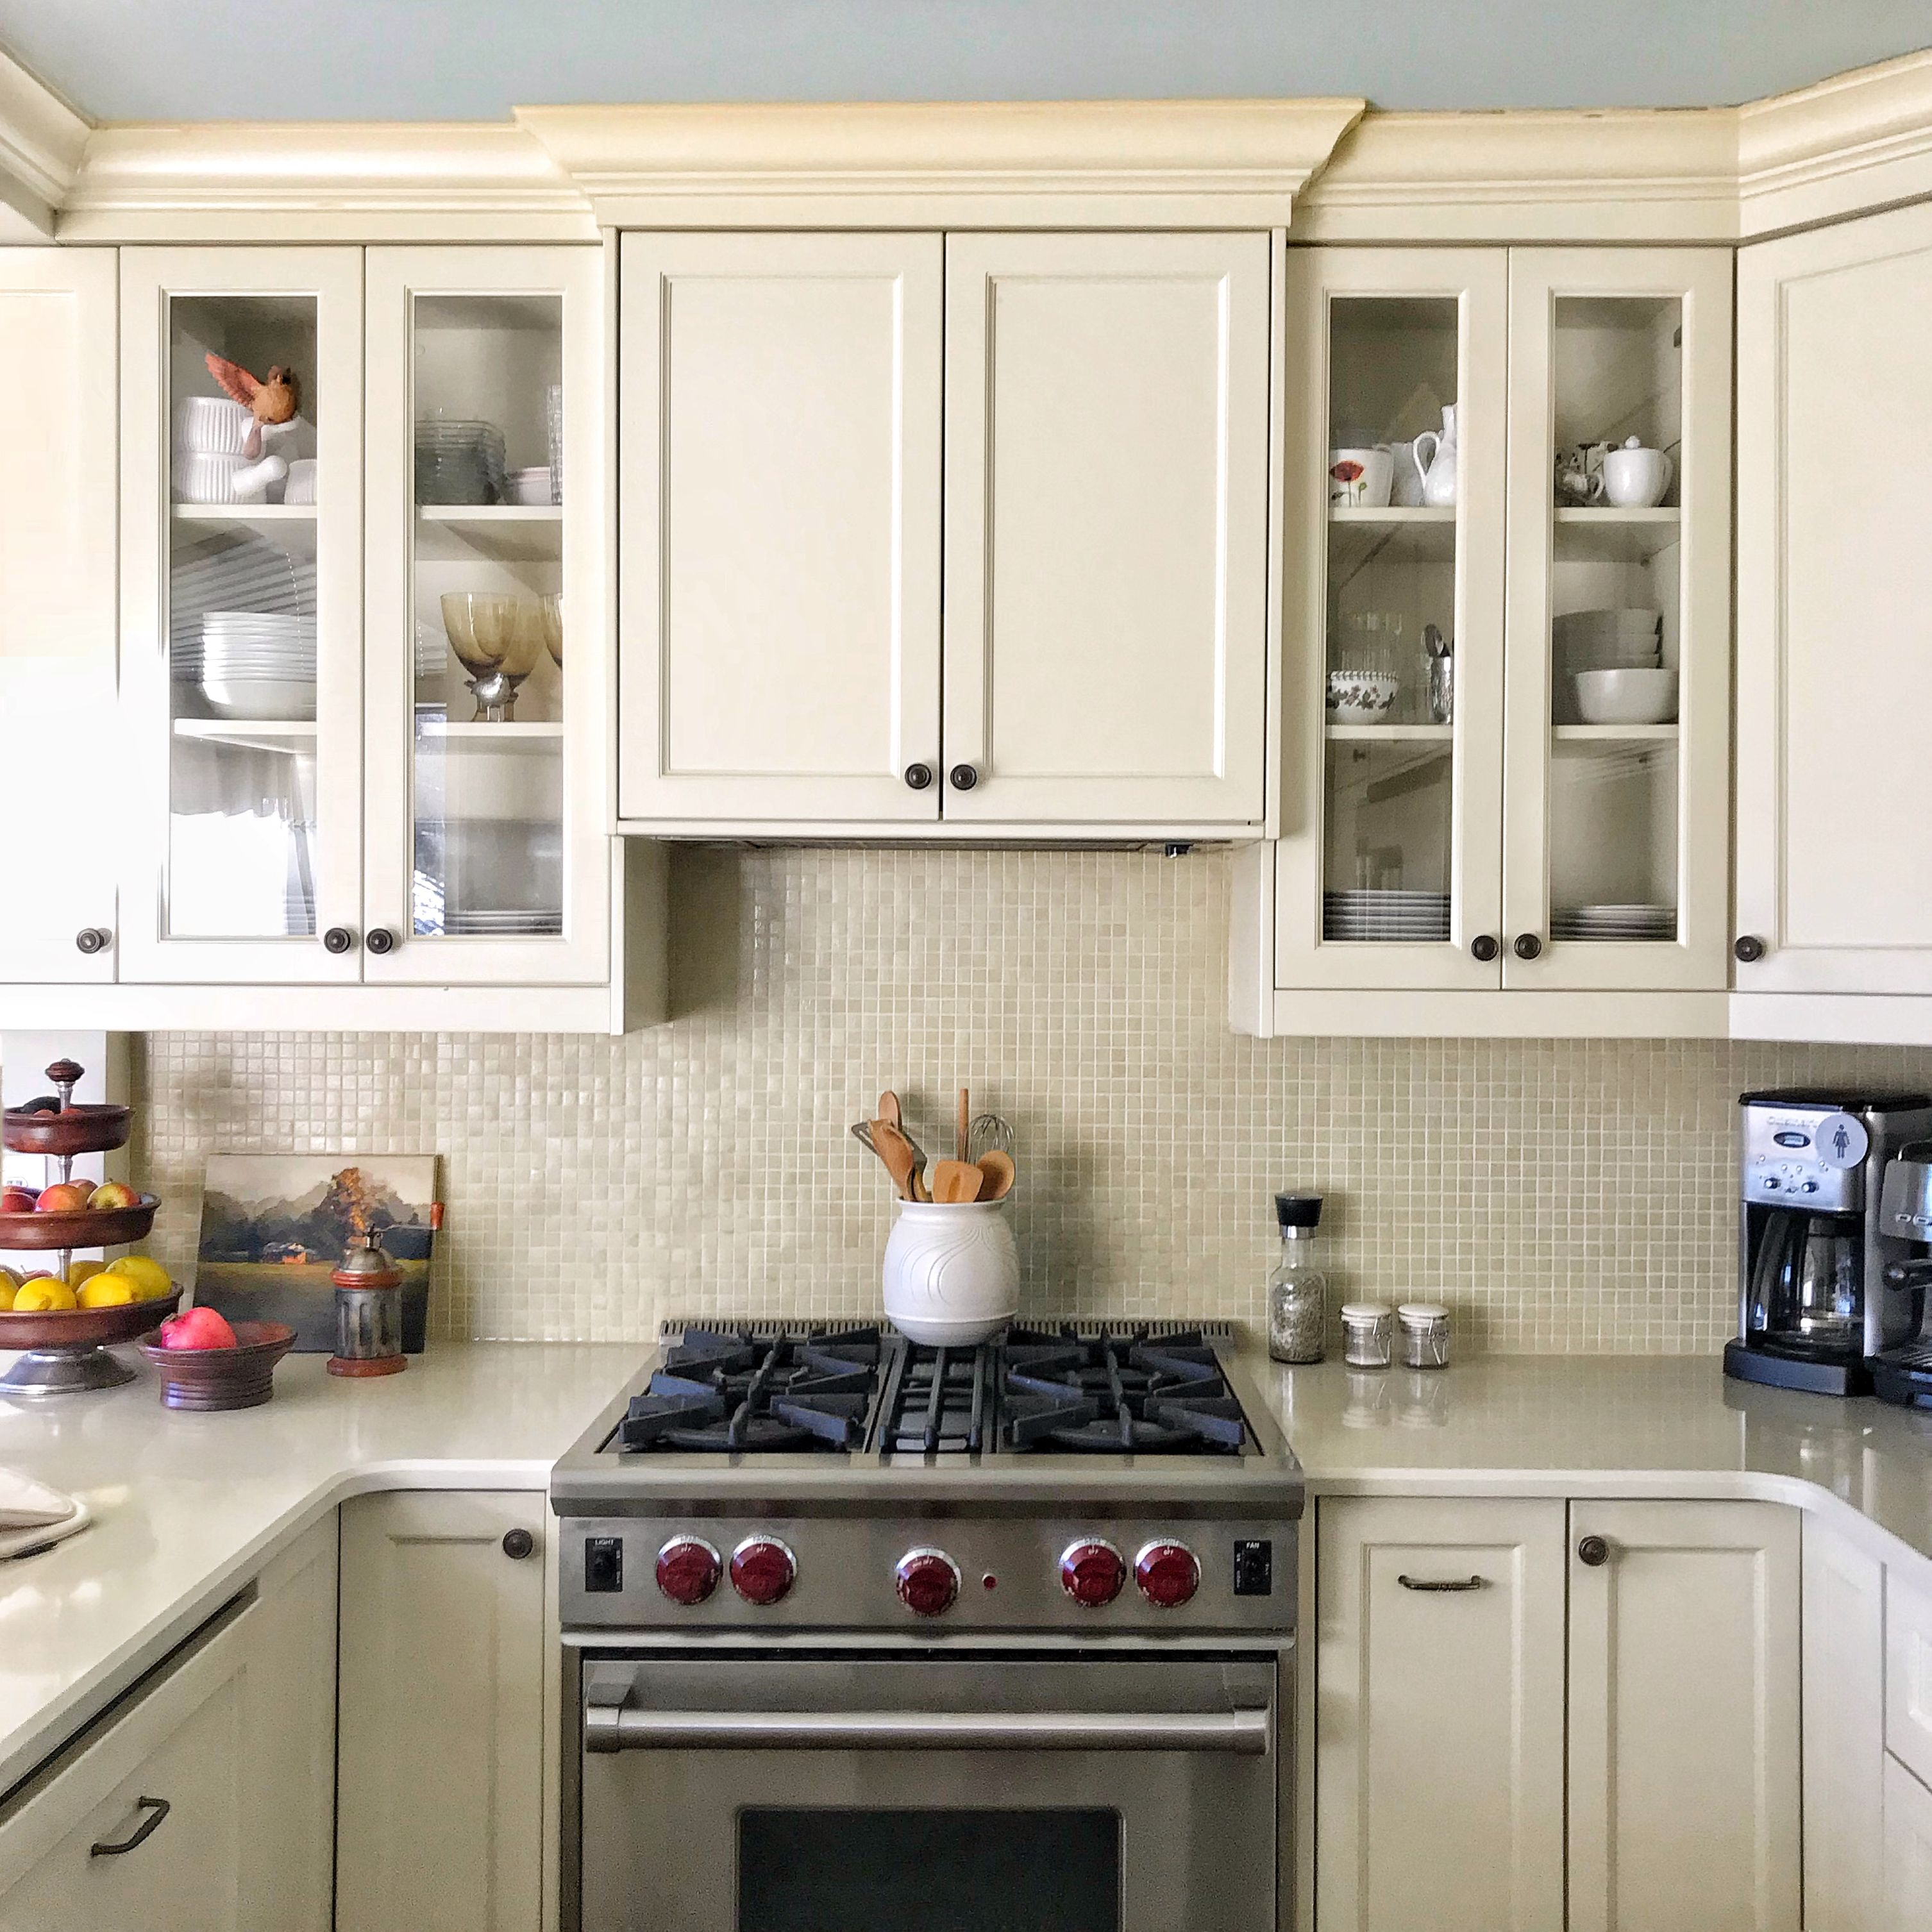 Small Kitchen With Exhaust Fan Hidden